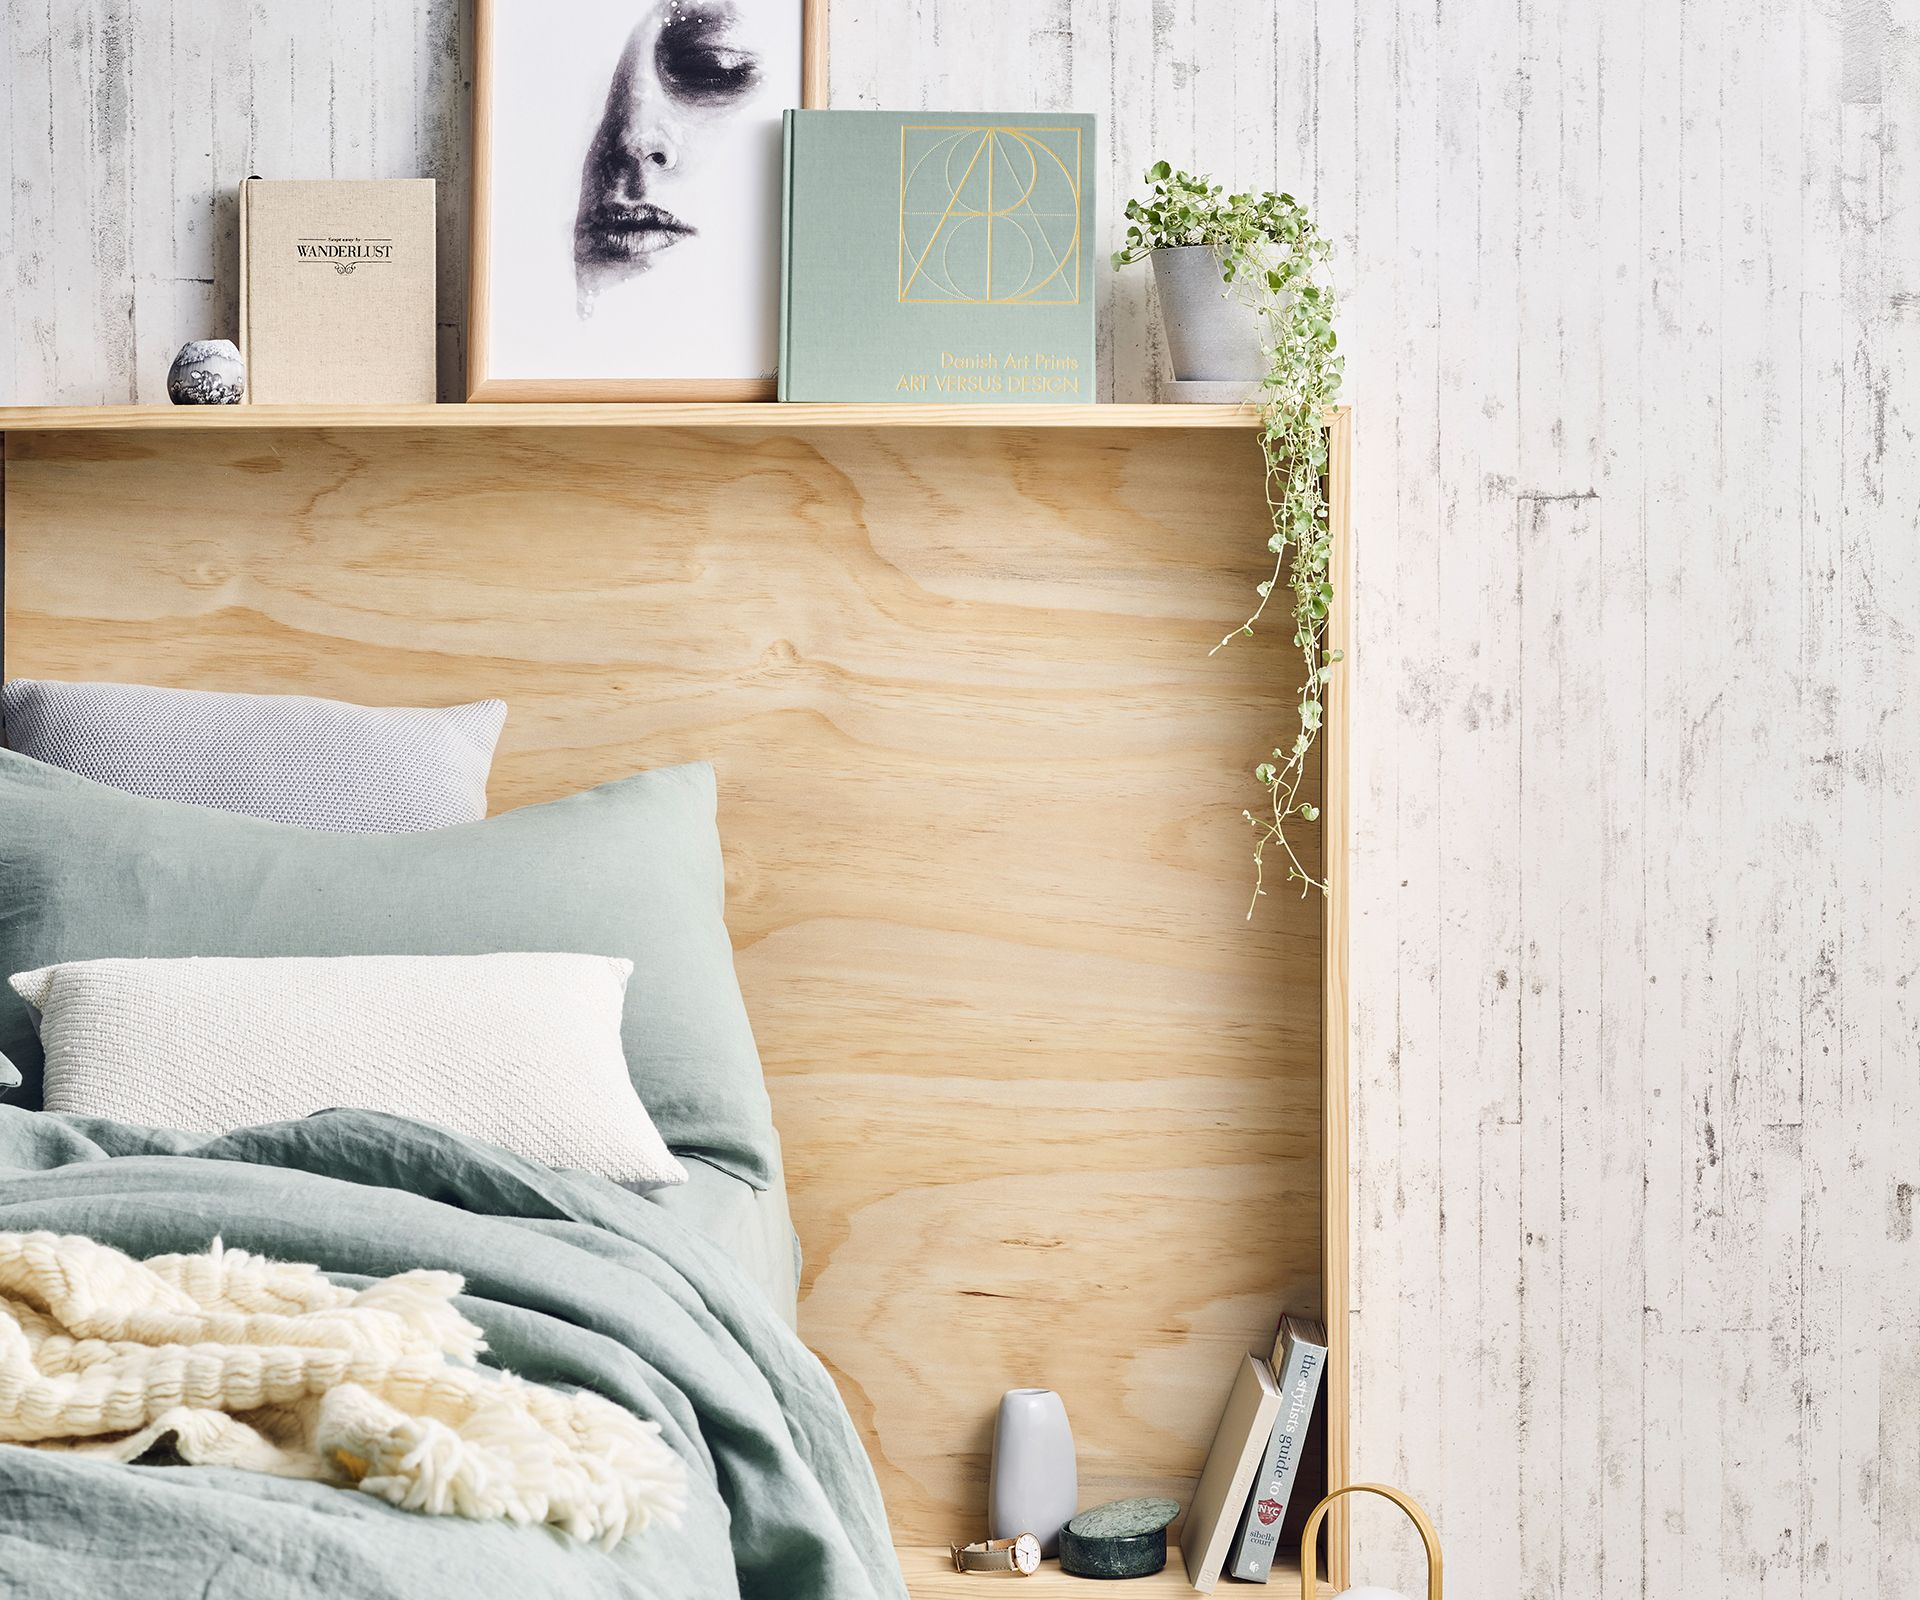 Stylish Storage Ideas For Small Bedrooms: How To Make A Double Duty Bedhead